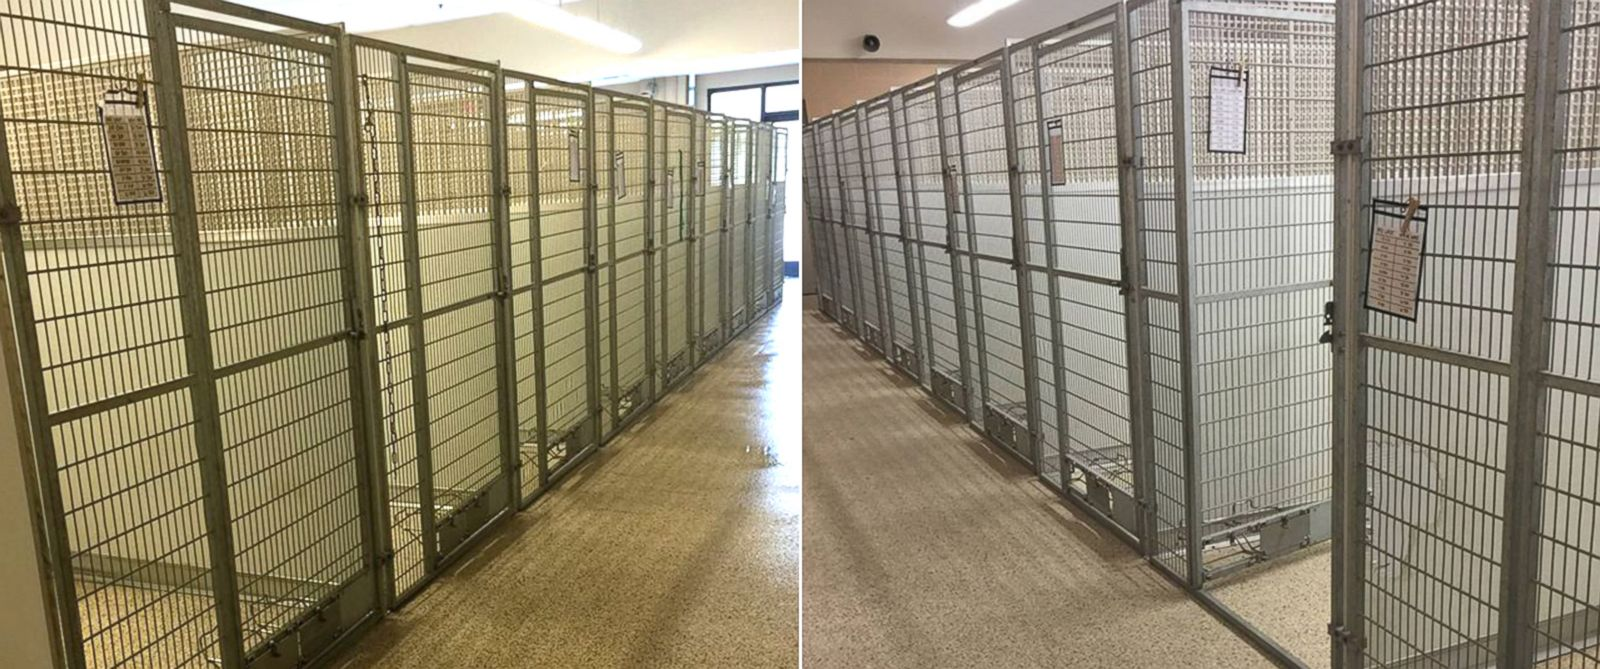 Animal Shelter Finds Homes for Every Cat and Dog in Its Facility